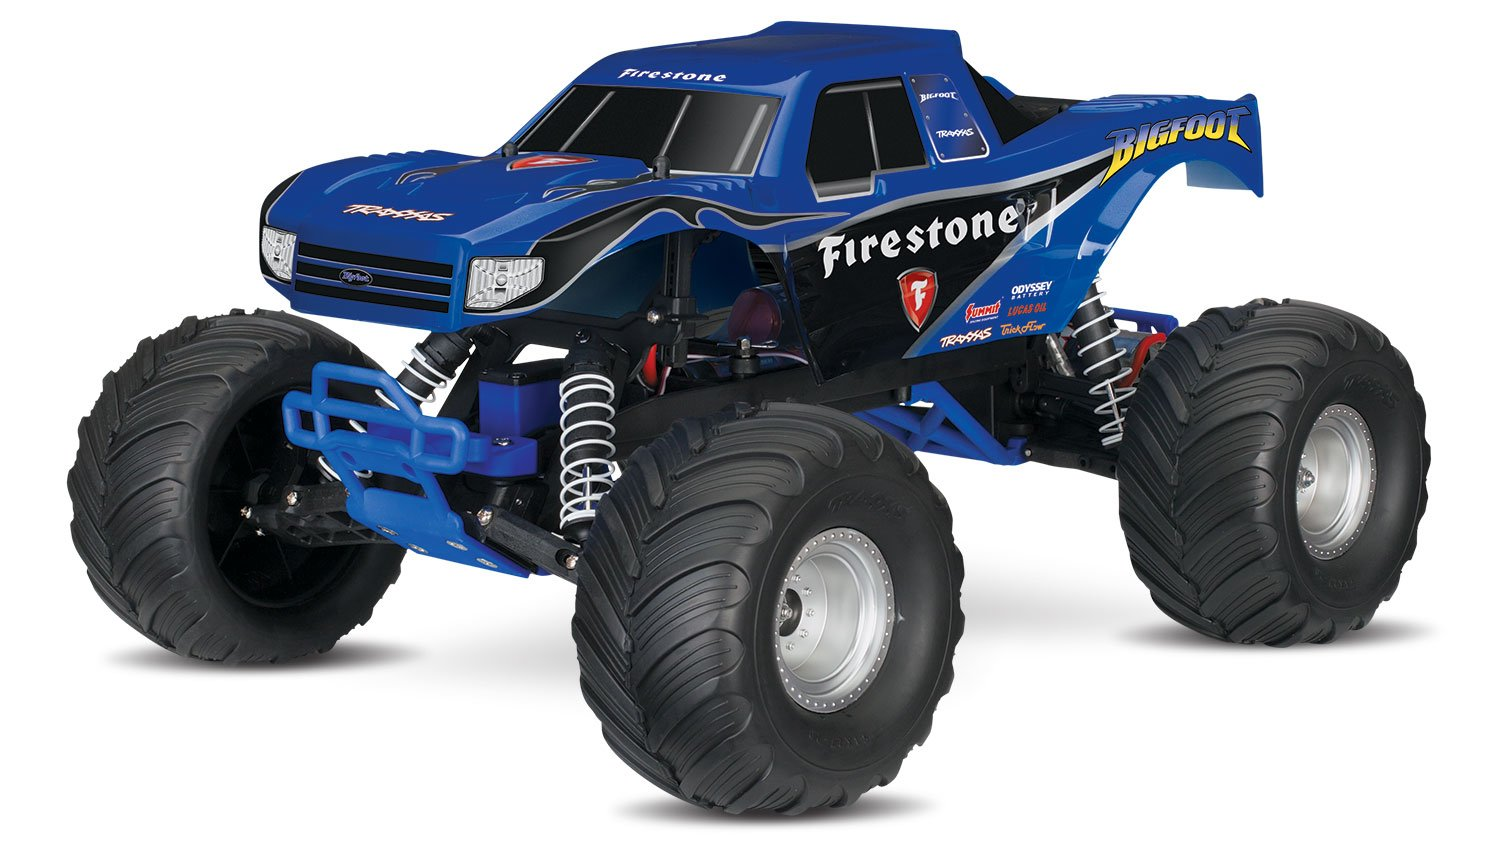 Traxxas Bigfoot 1 10 Scale Ready To Race Monster Truck Slash Pro 2wd Short Course 58034 With Tq 24ghz Radio System Blue Toys Games